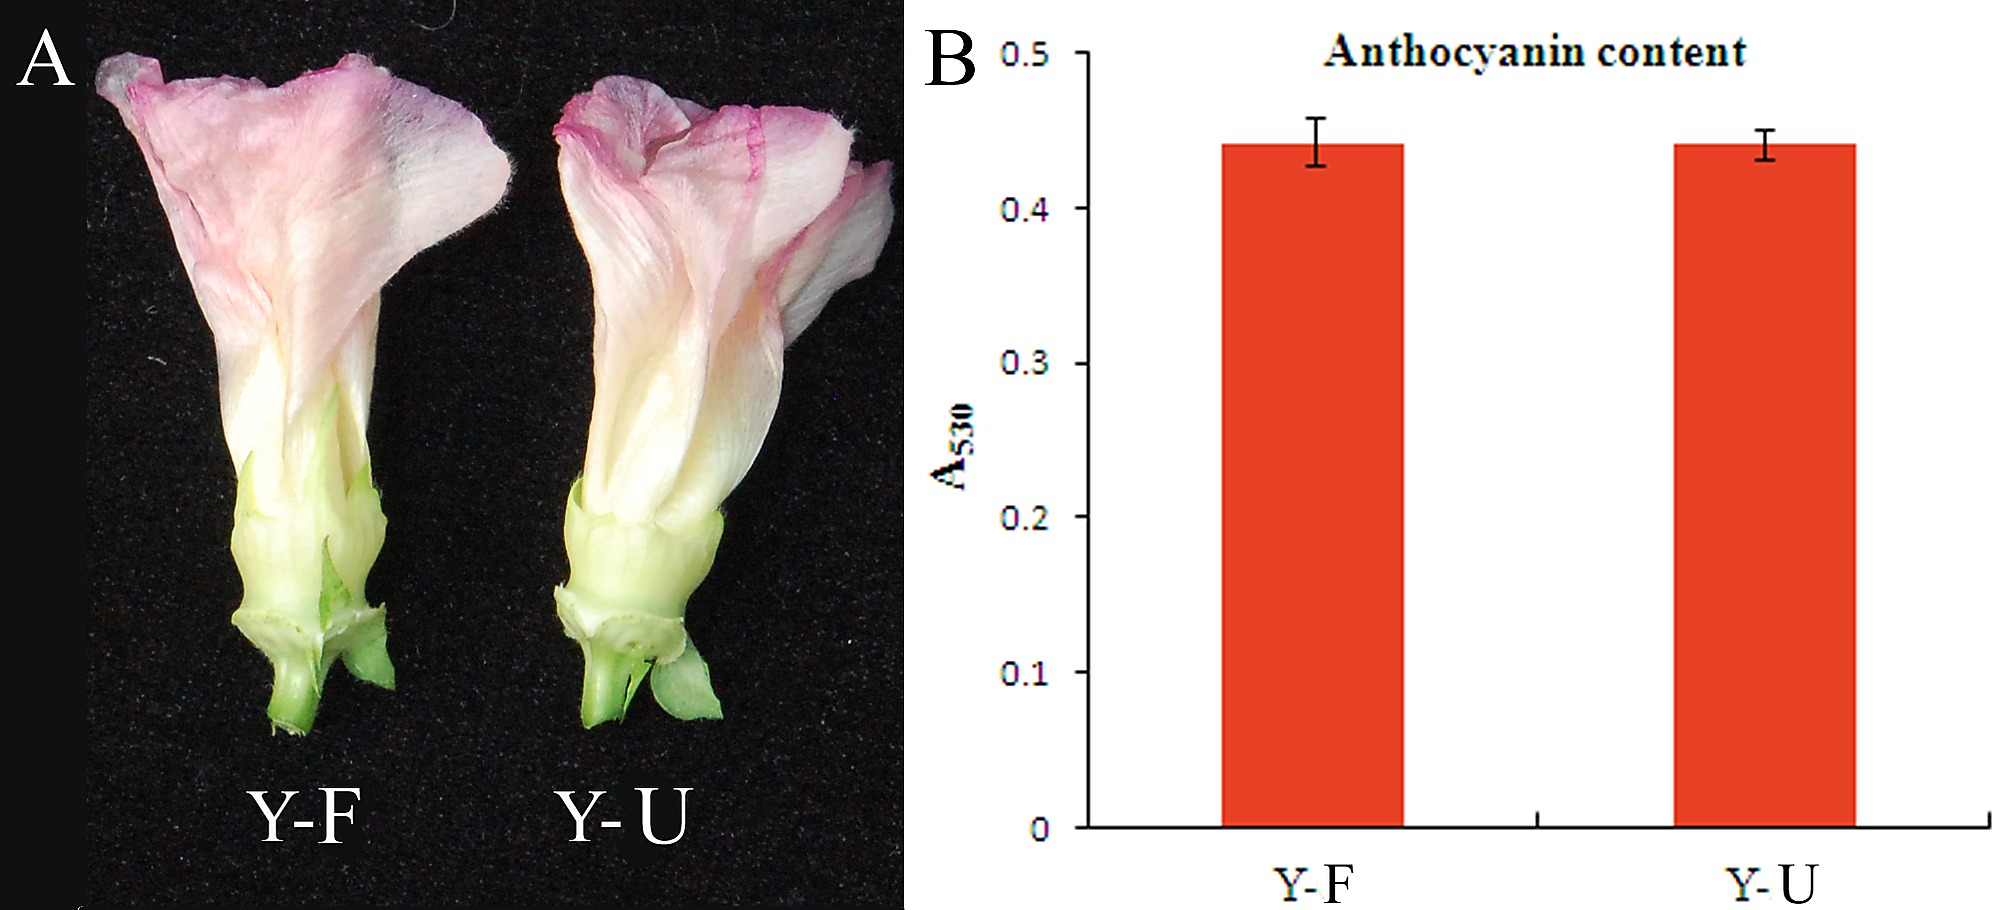 The Flavonoid Pathway Regulates the Petal Colors of Cotton Flower